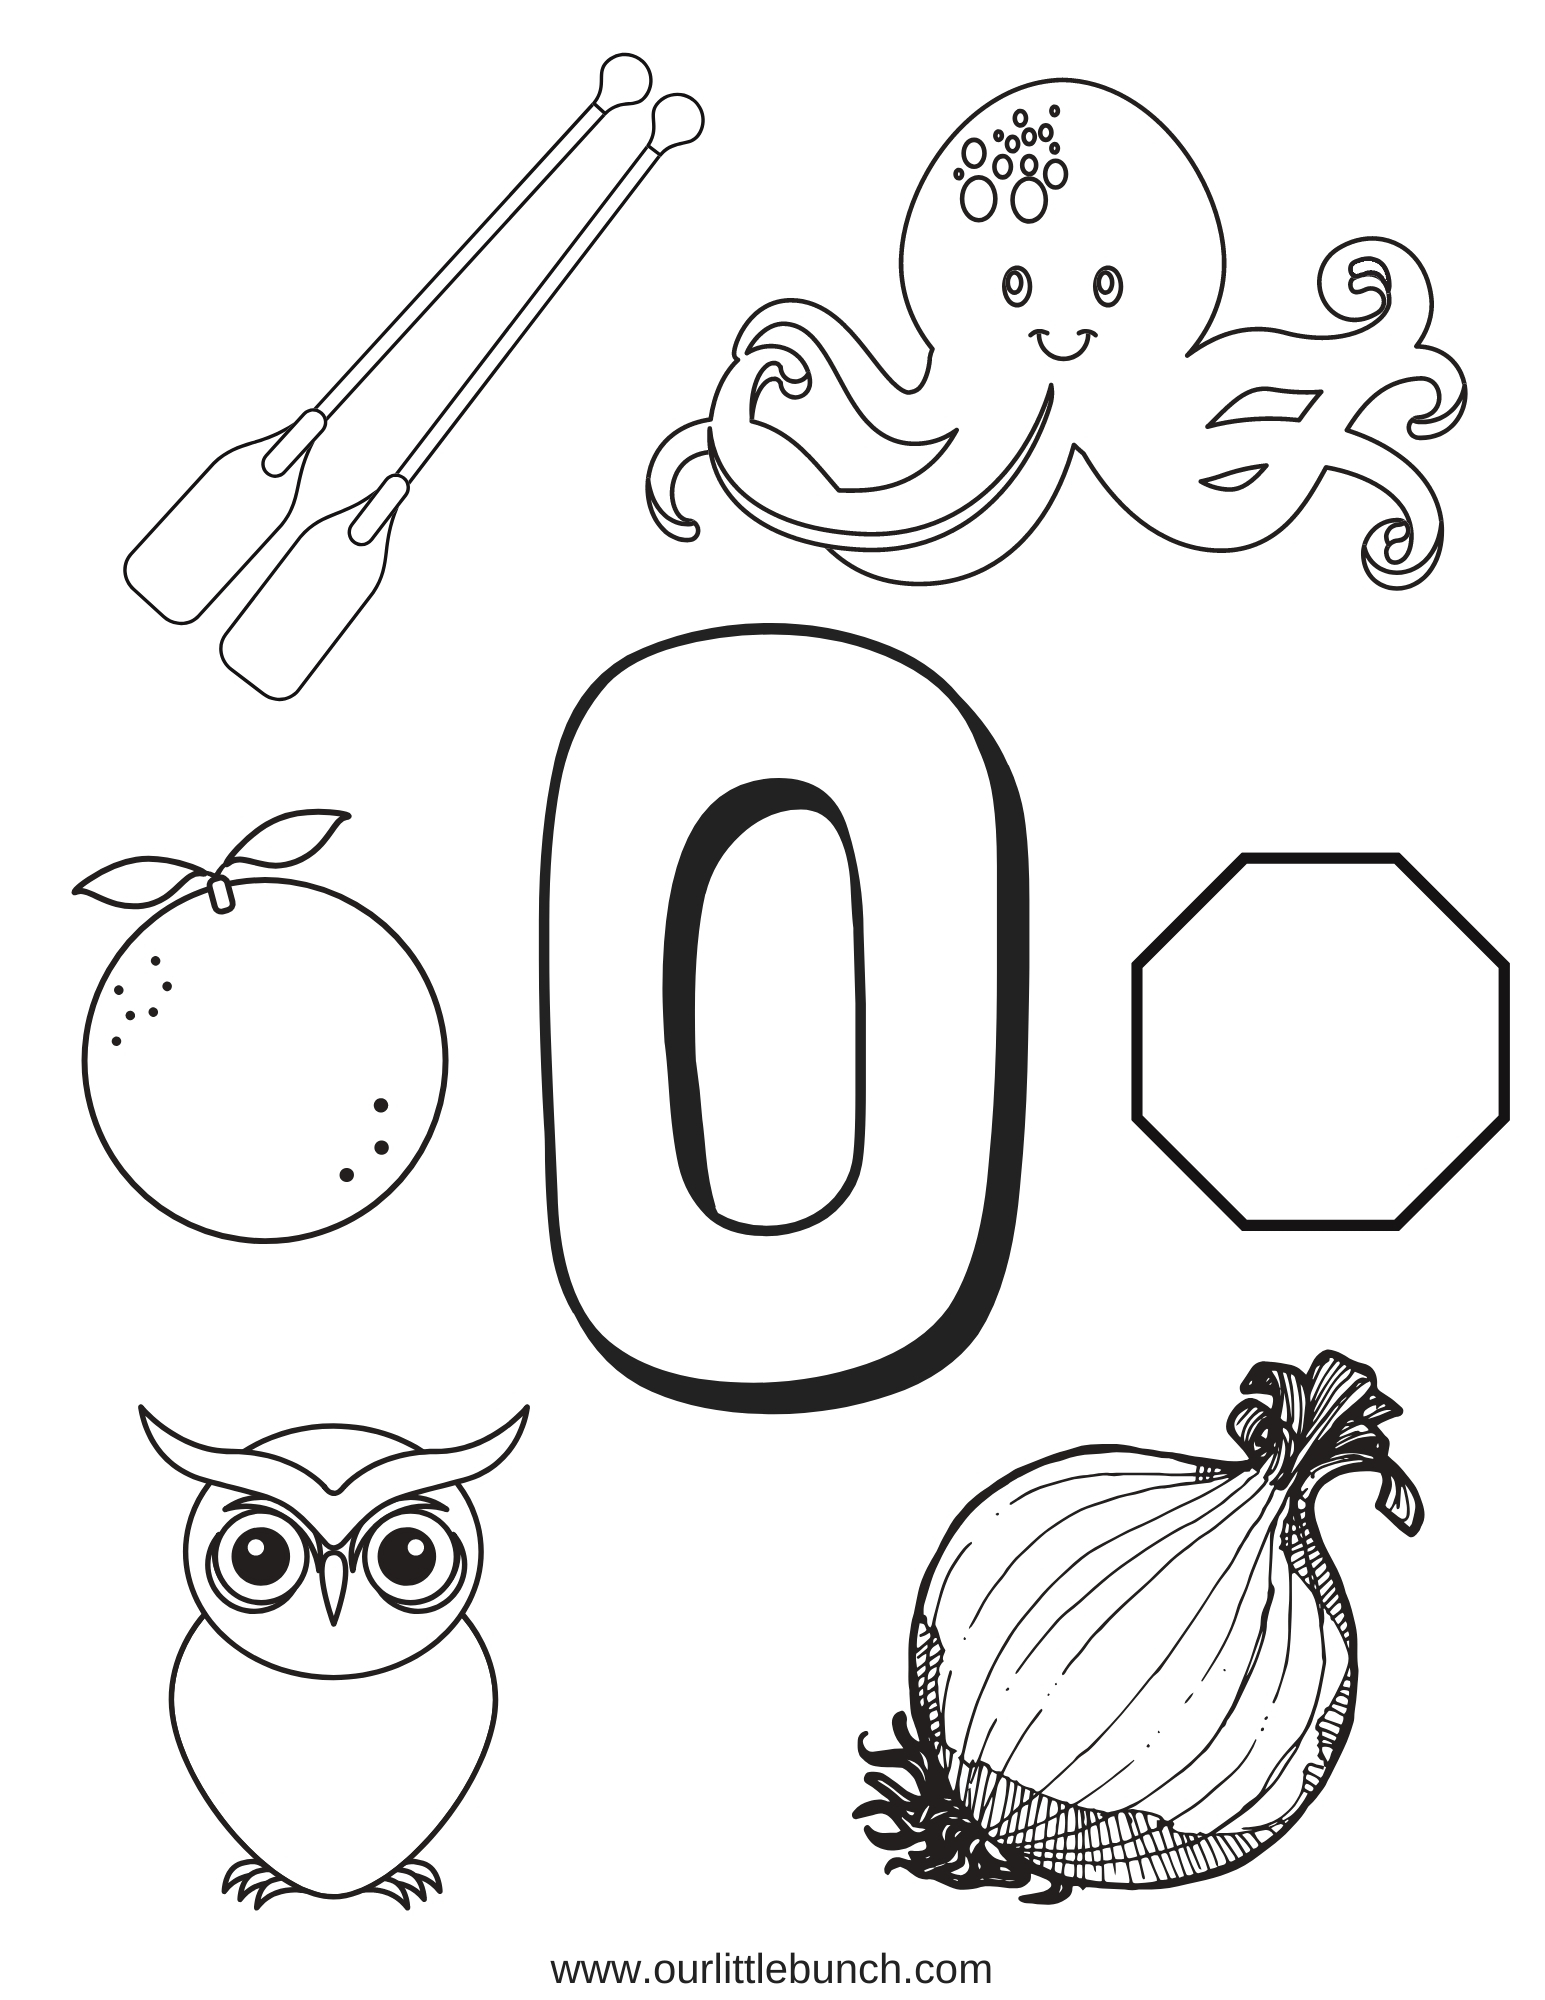 Letter O - Letter Of The Week Series - Our Little Bunch with Letter O Worksheets Pdf